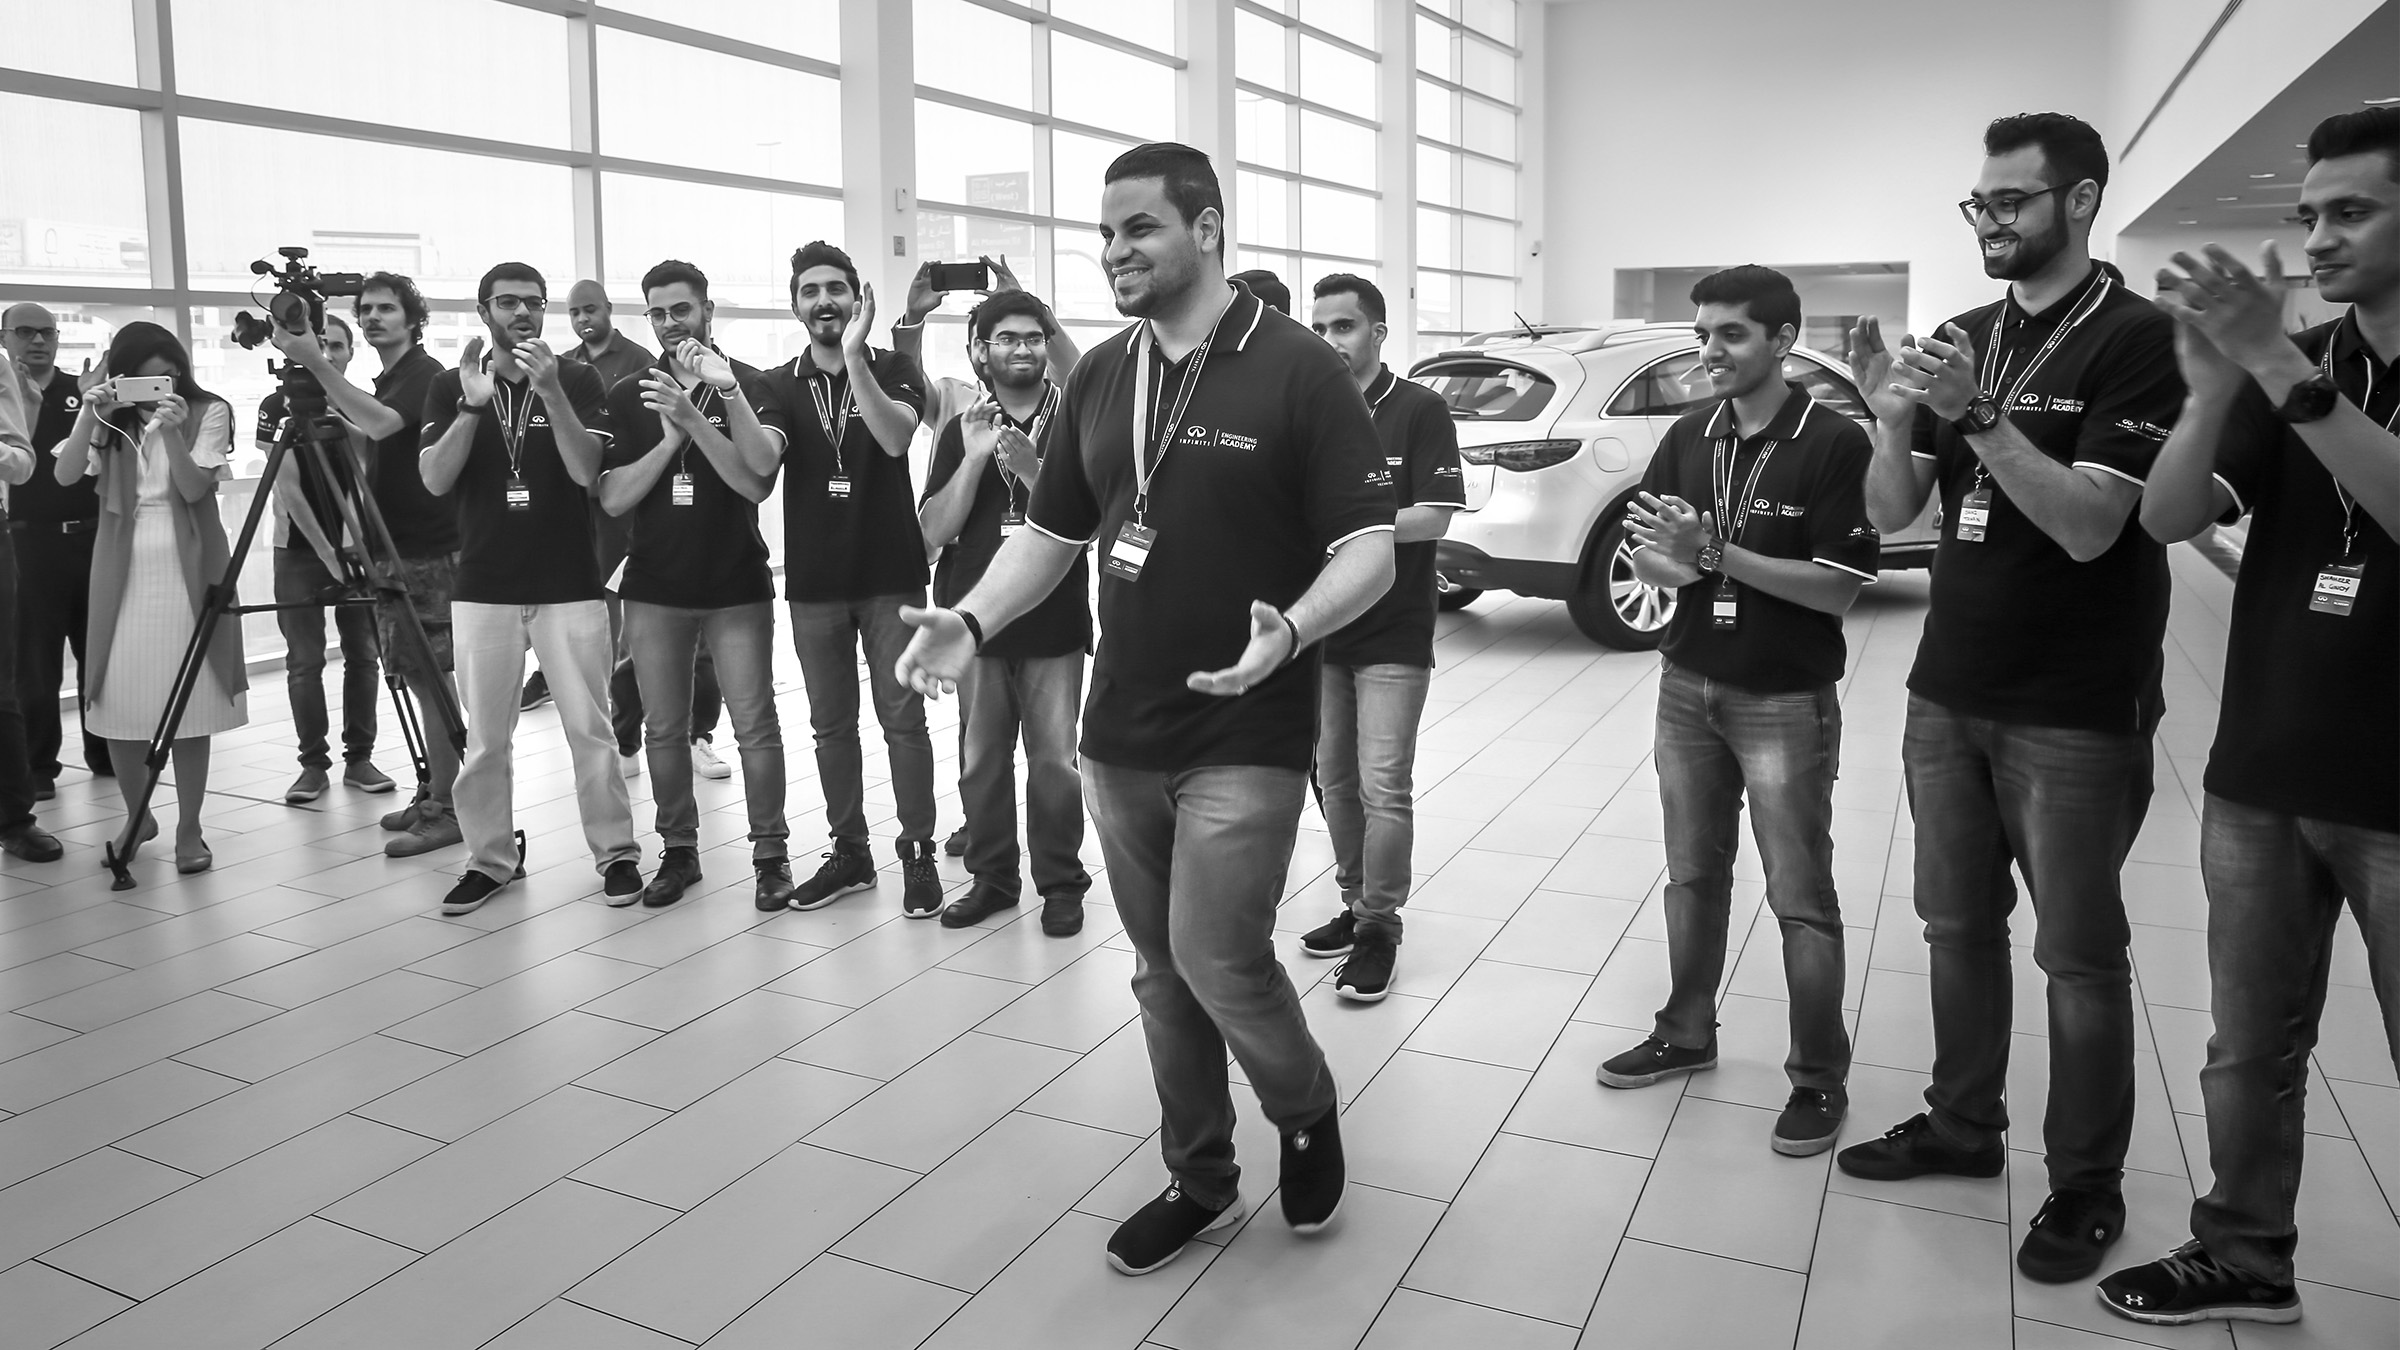 INFINITI Engineering Academy Winner Yazan Alhindawi